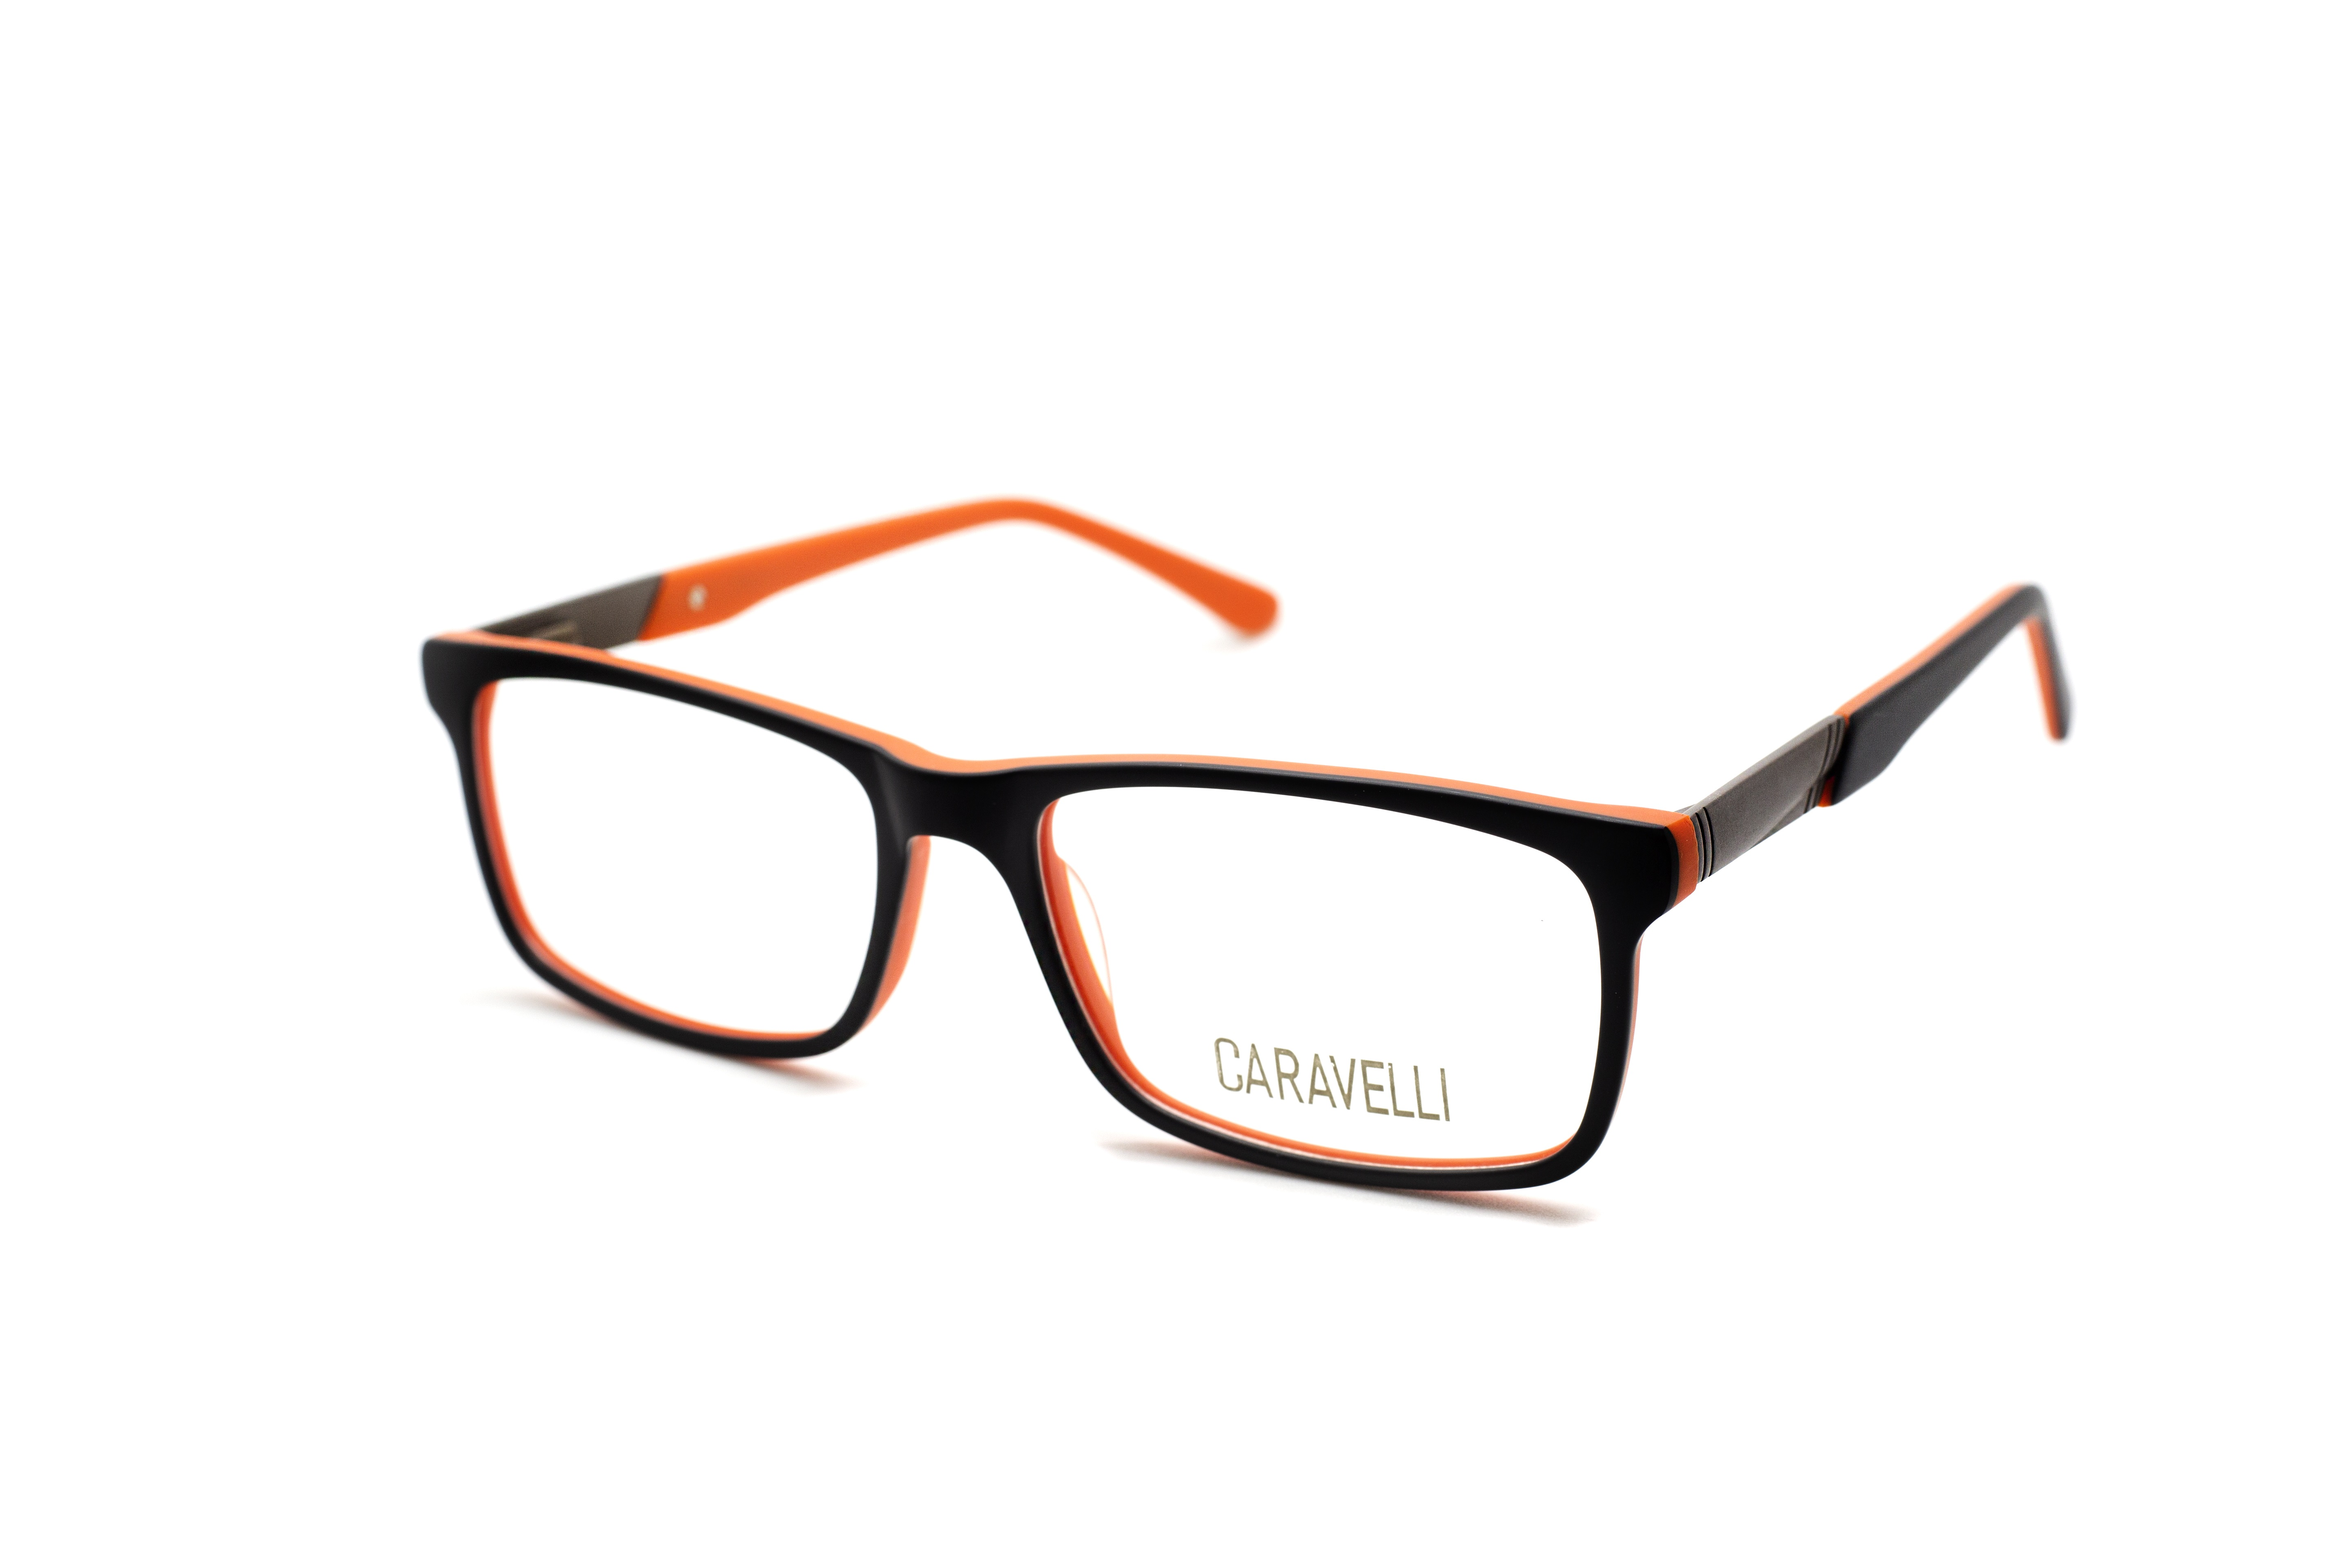 Caravelli 207 - Black (2 - Black/Orange)